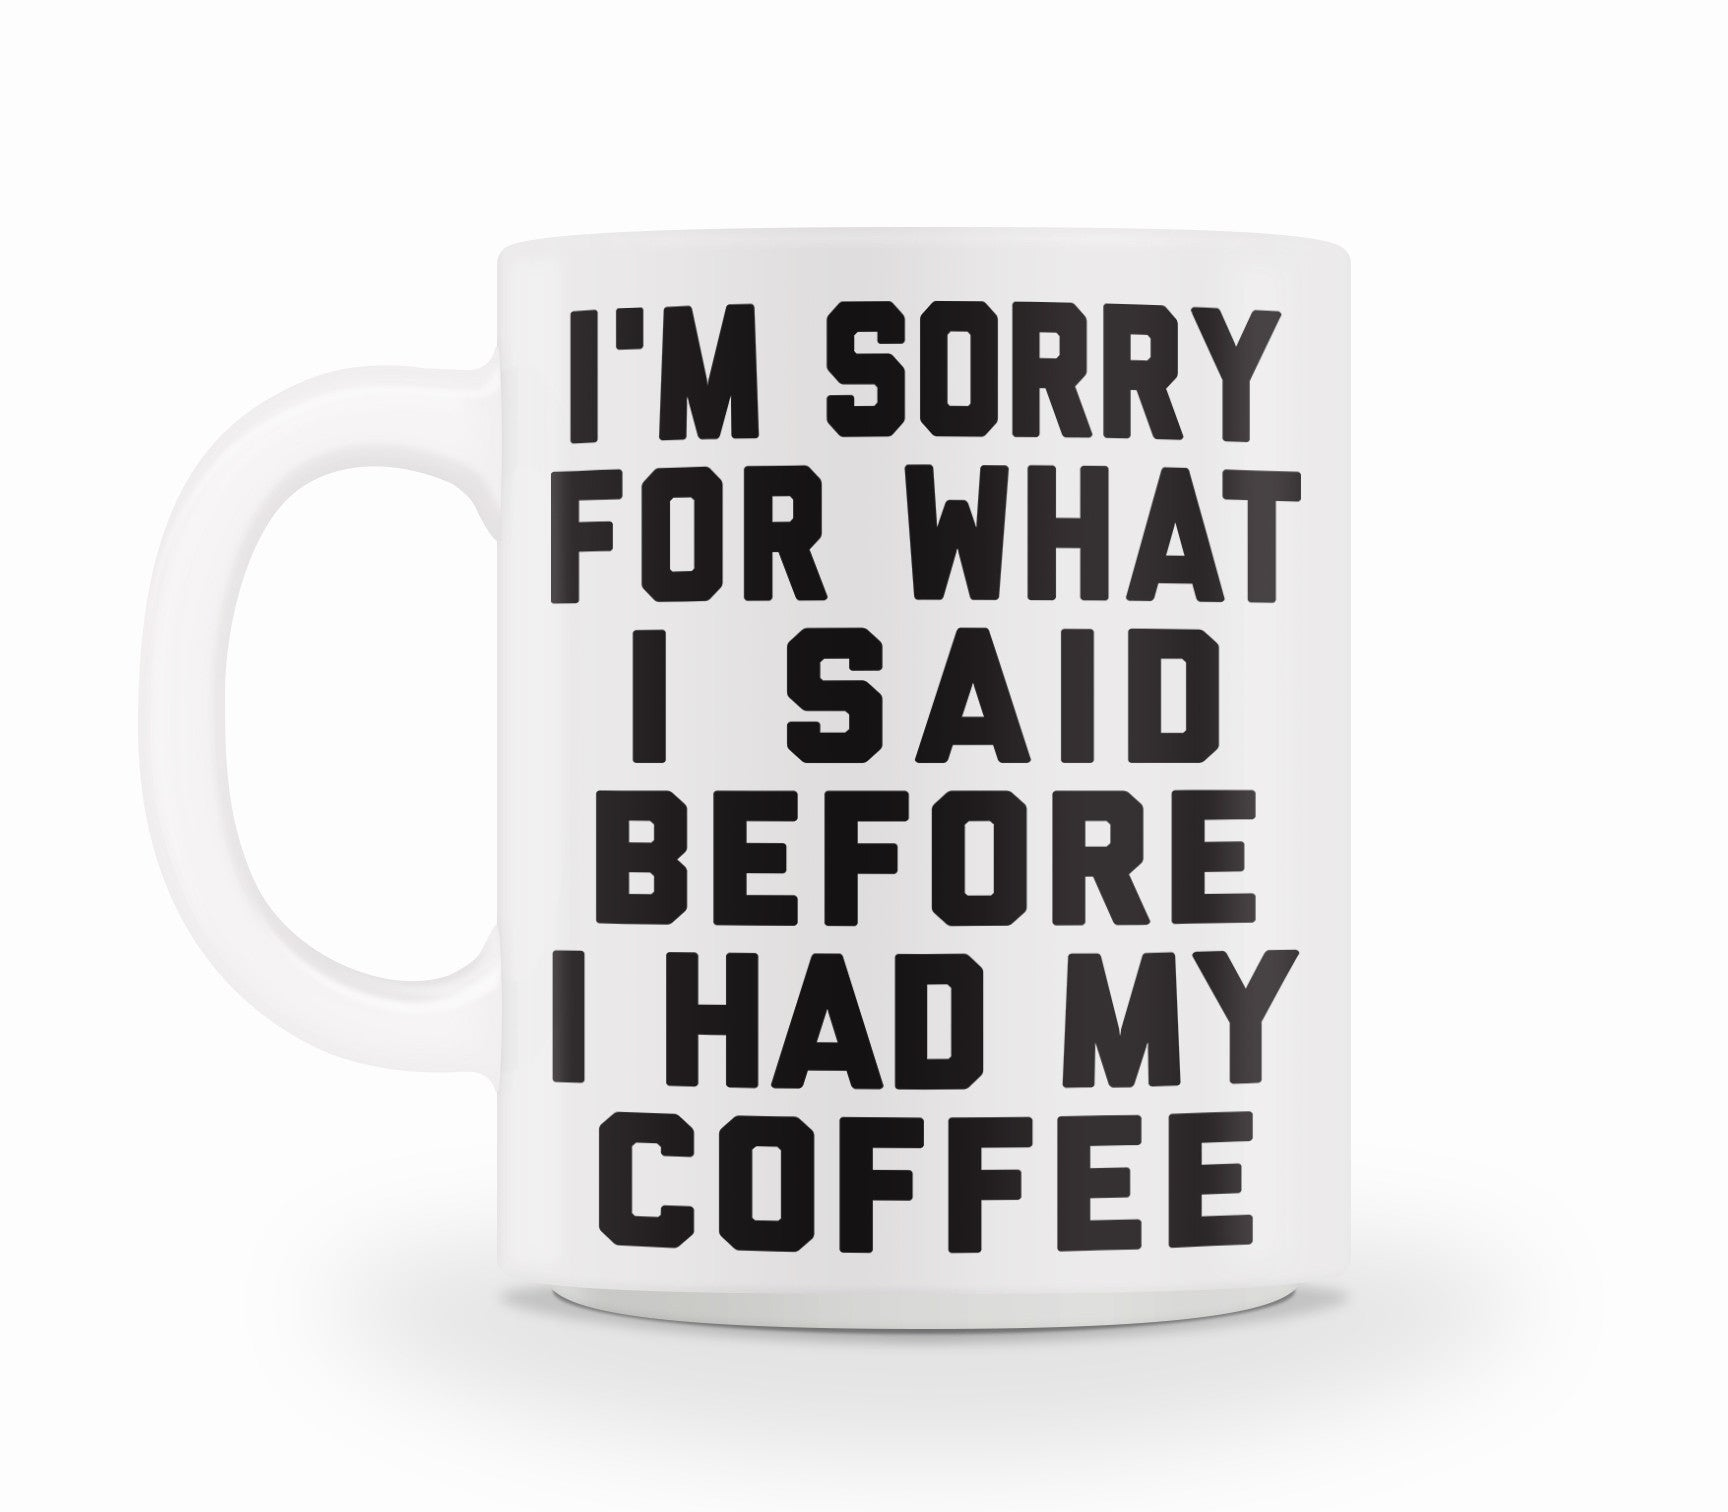 I'm sorry for what I said before I had my coffee!